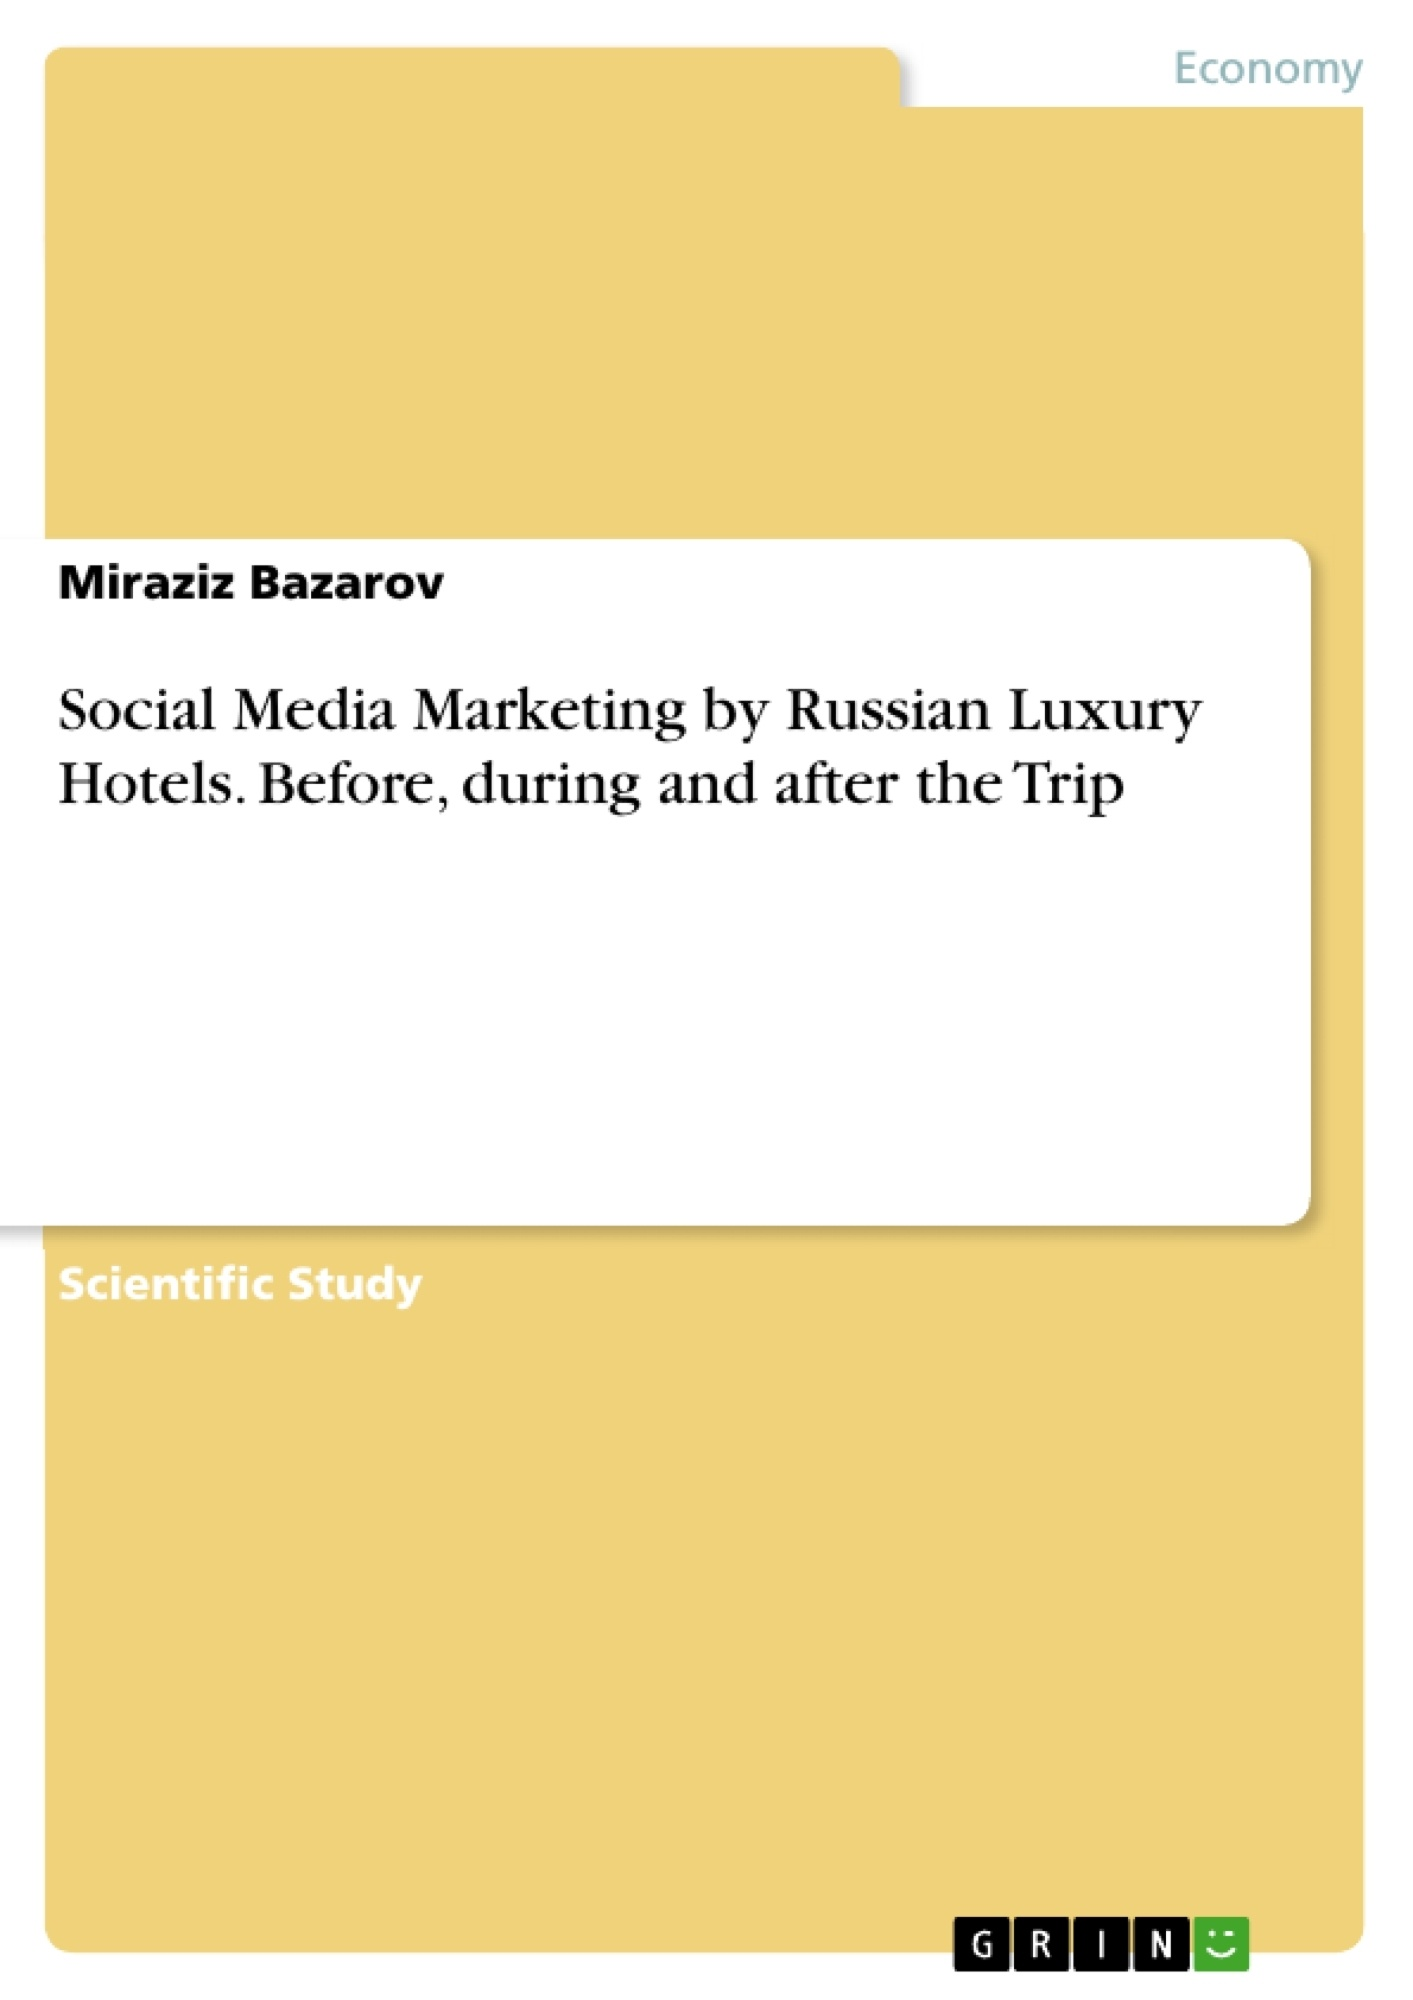 Title: Social Media Marketing by Russian Luxury Hotels. Before, during and after the Trip